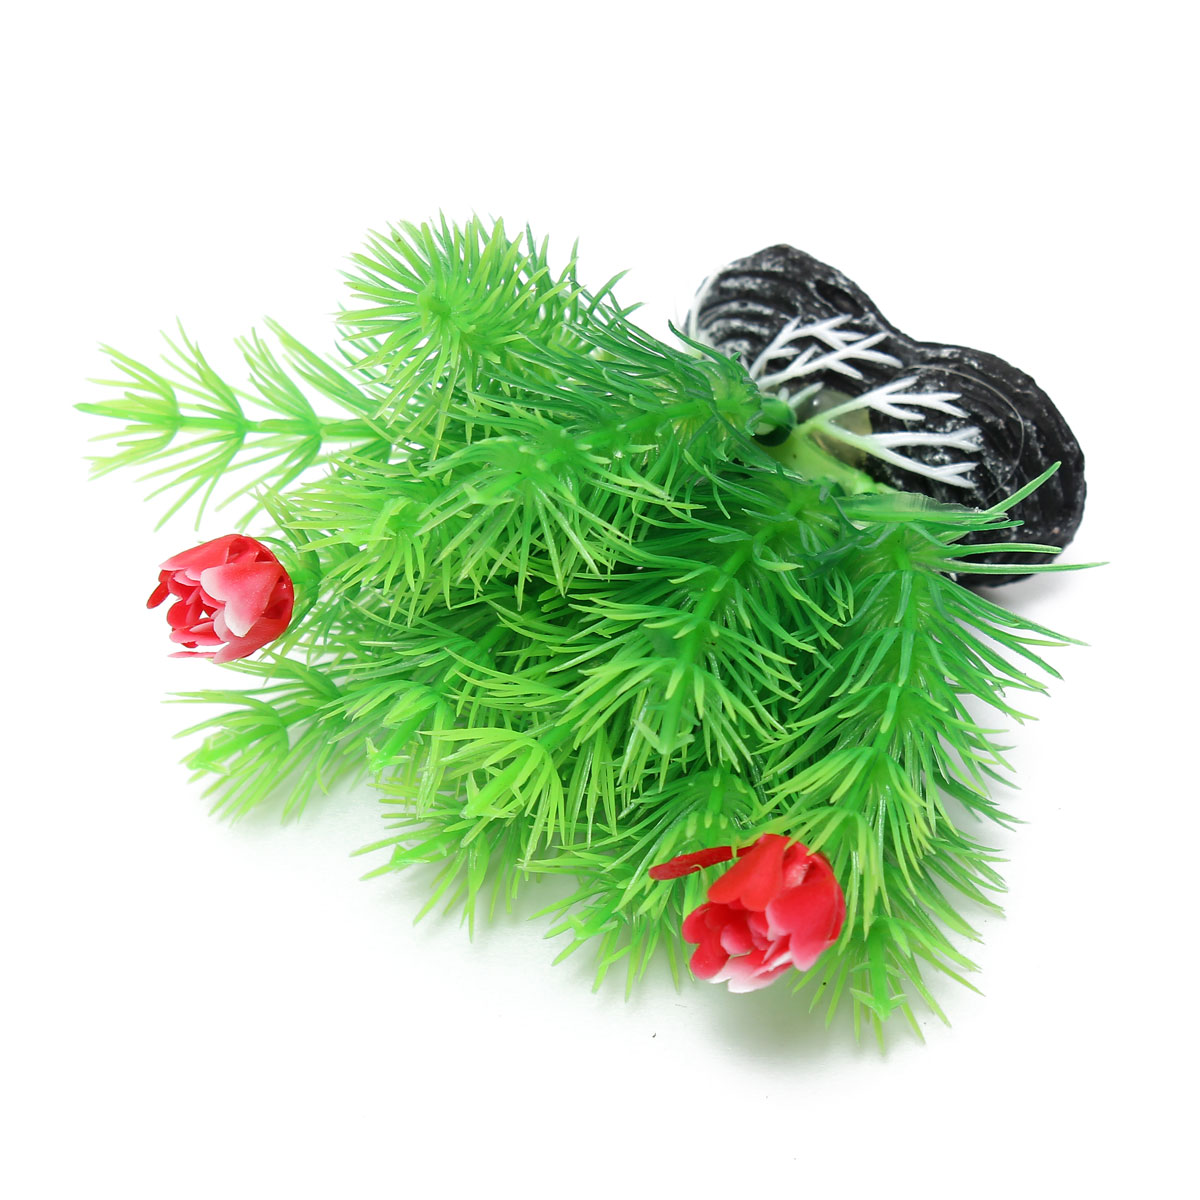 Aquarium decorations online canada aquarium plants for for Aquarium decoration online